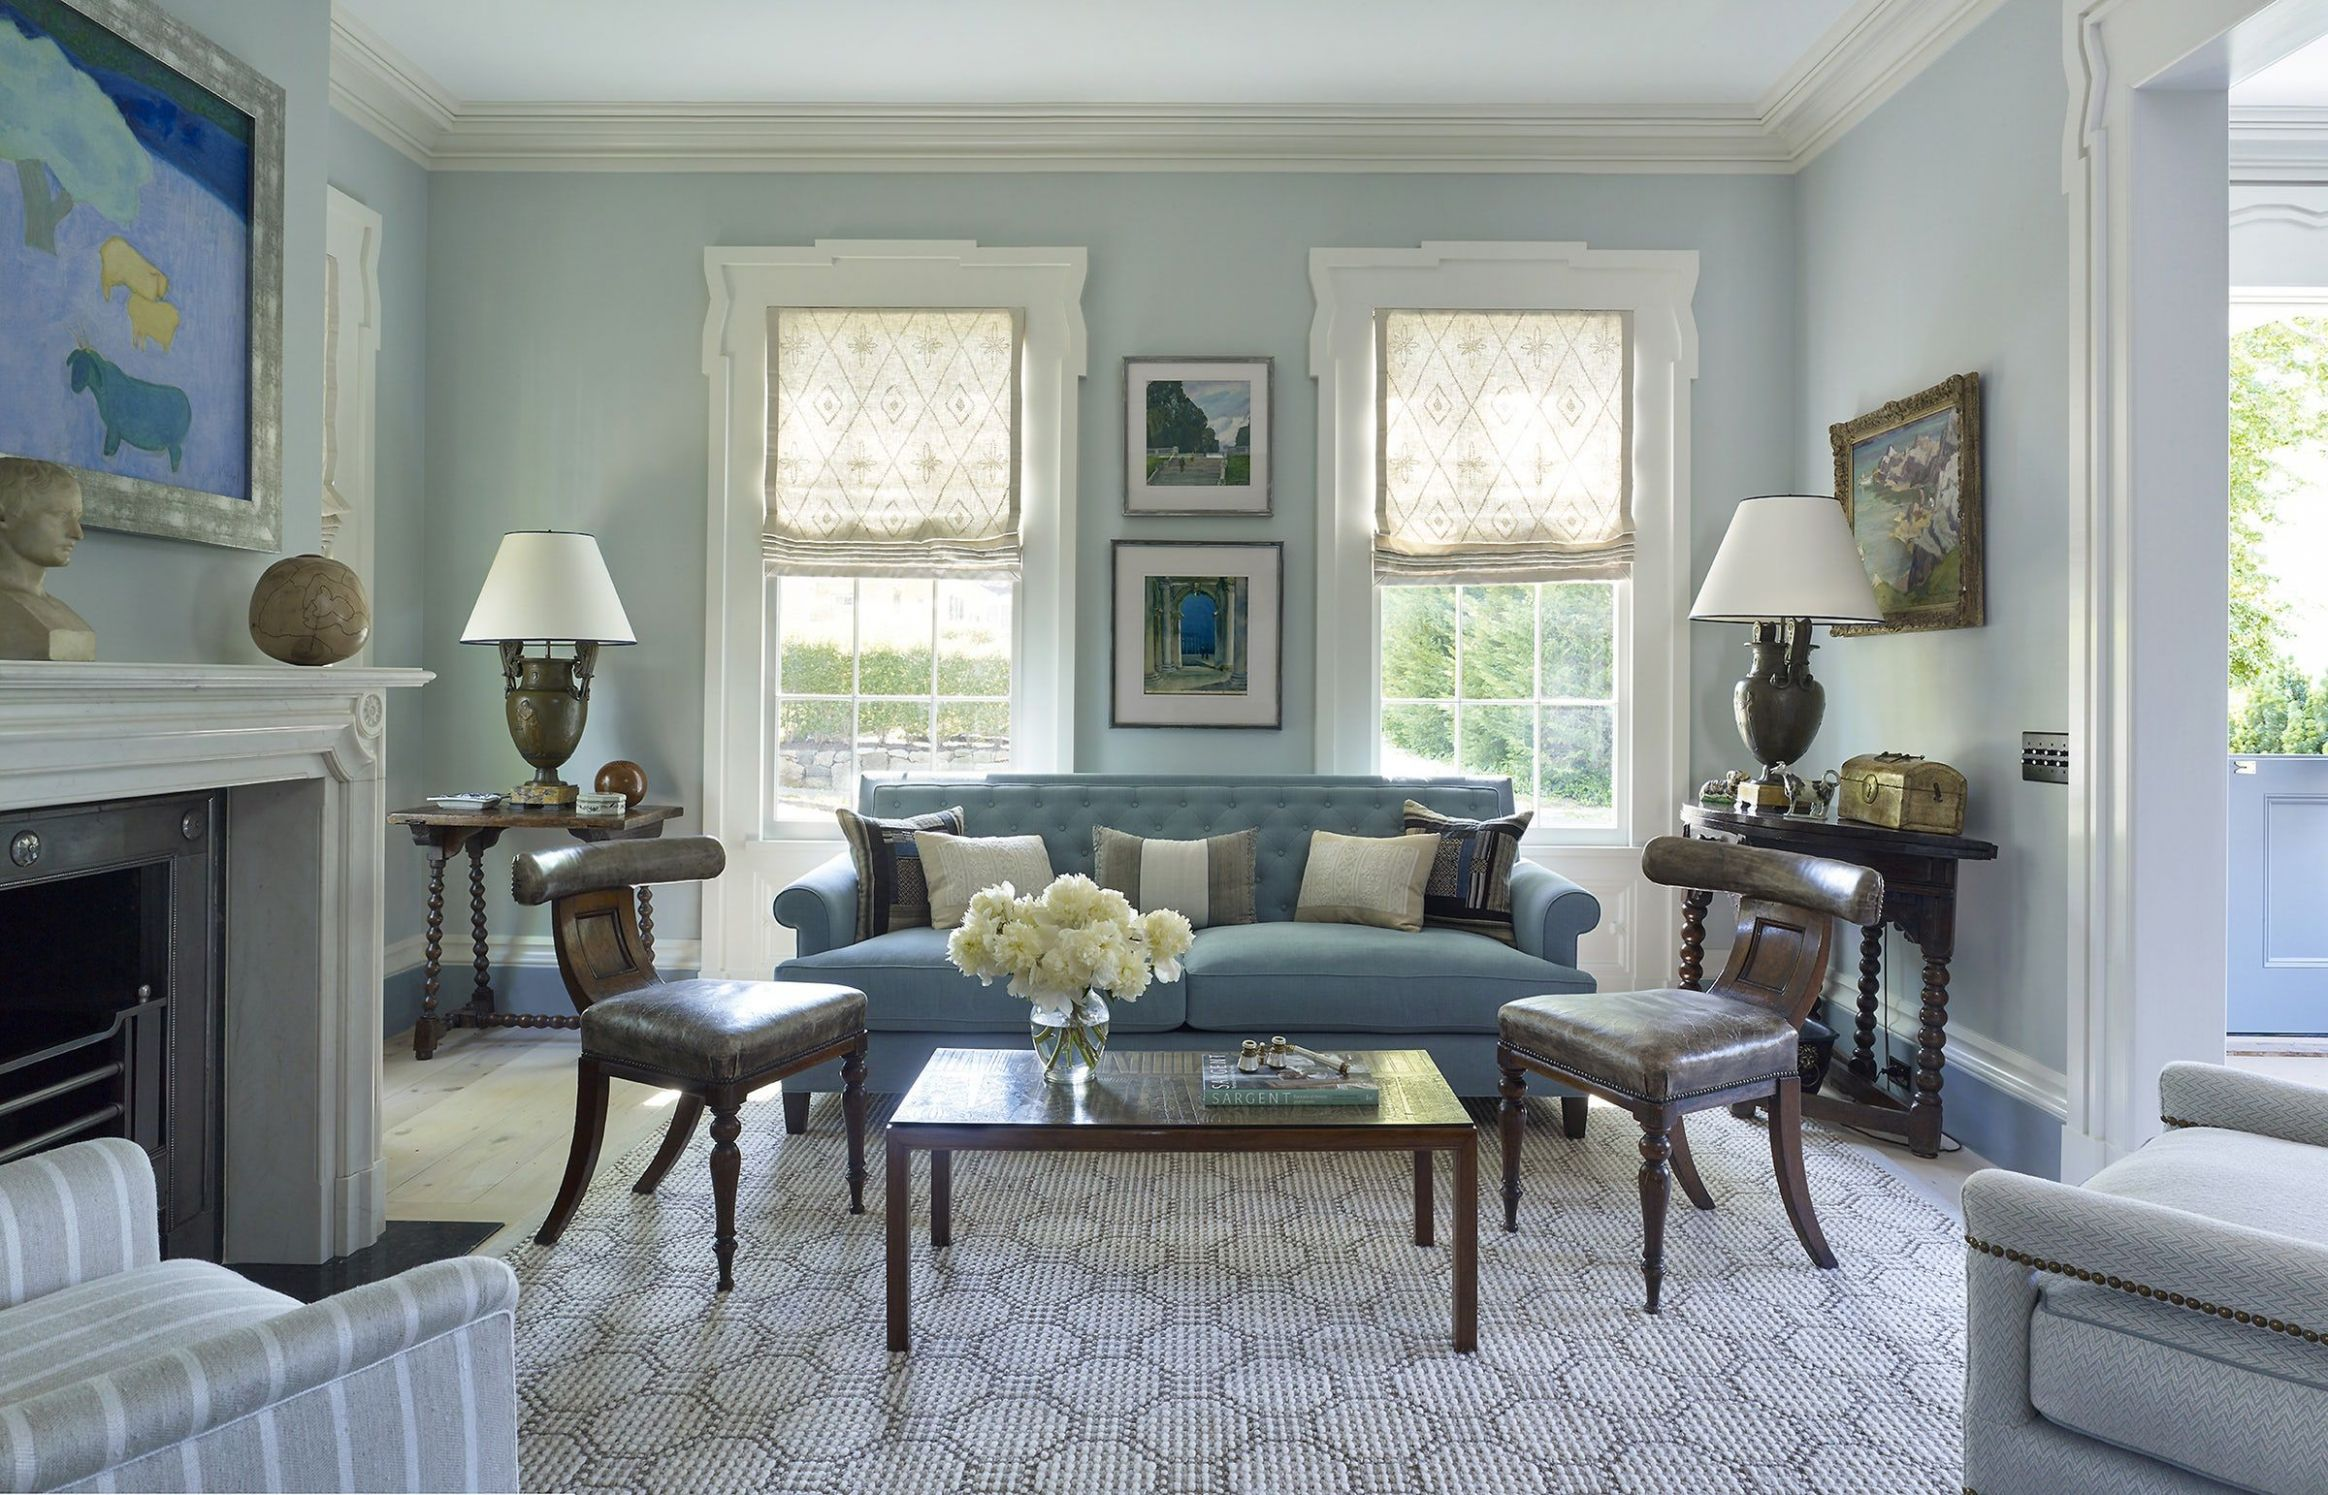 12 Living Room Furniture Layout Ideas - How to Arrange Seating in ..